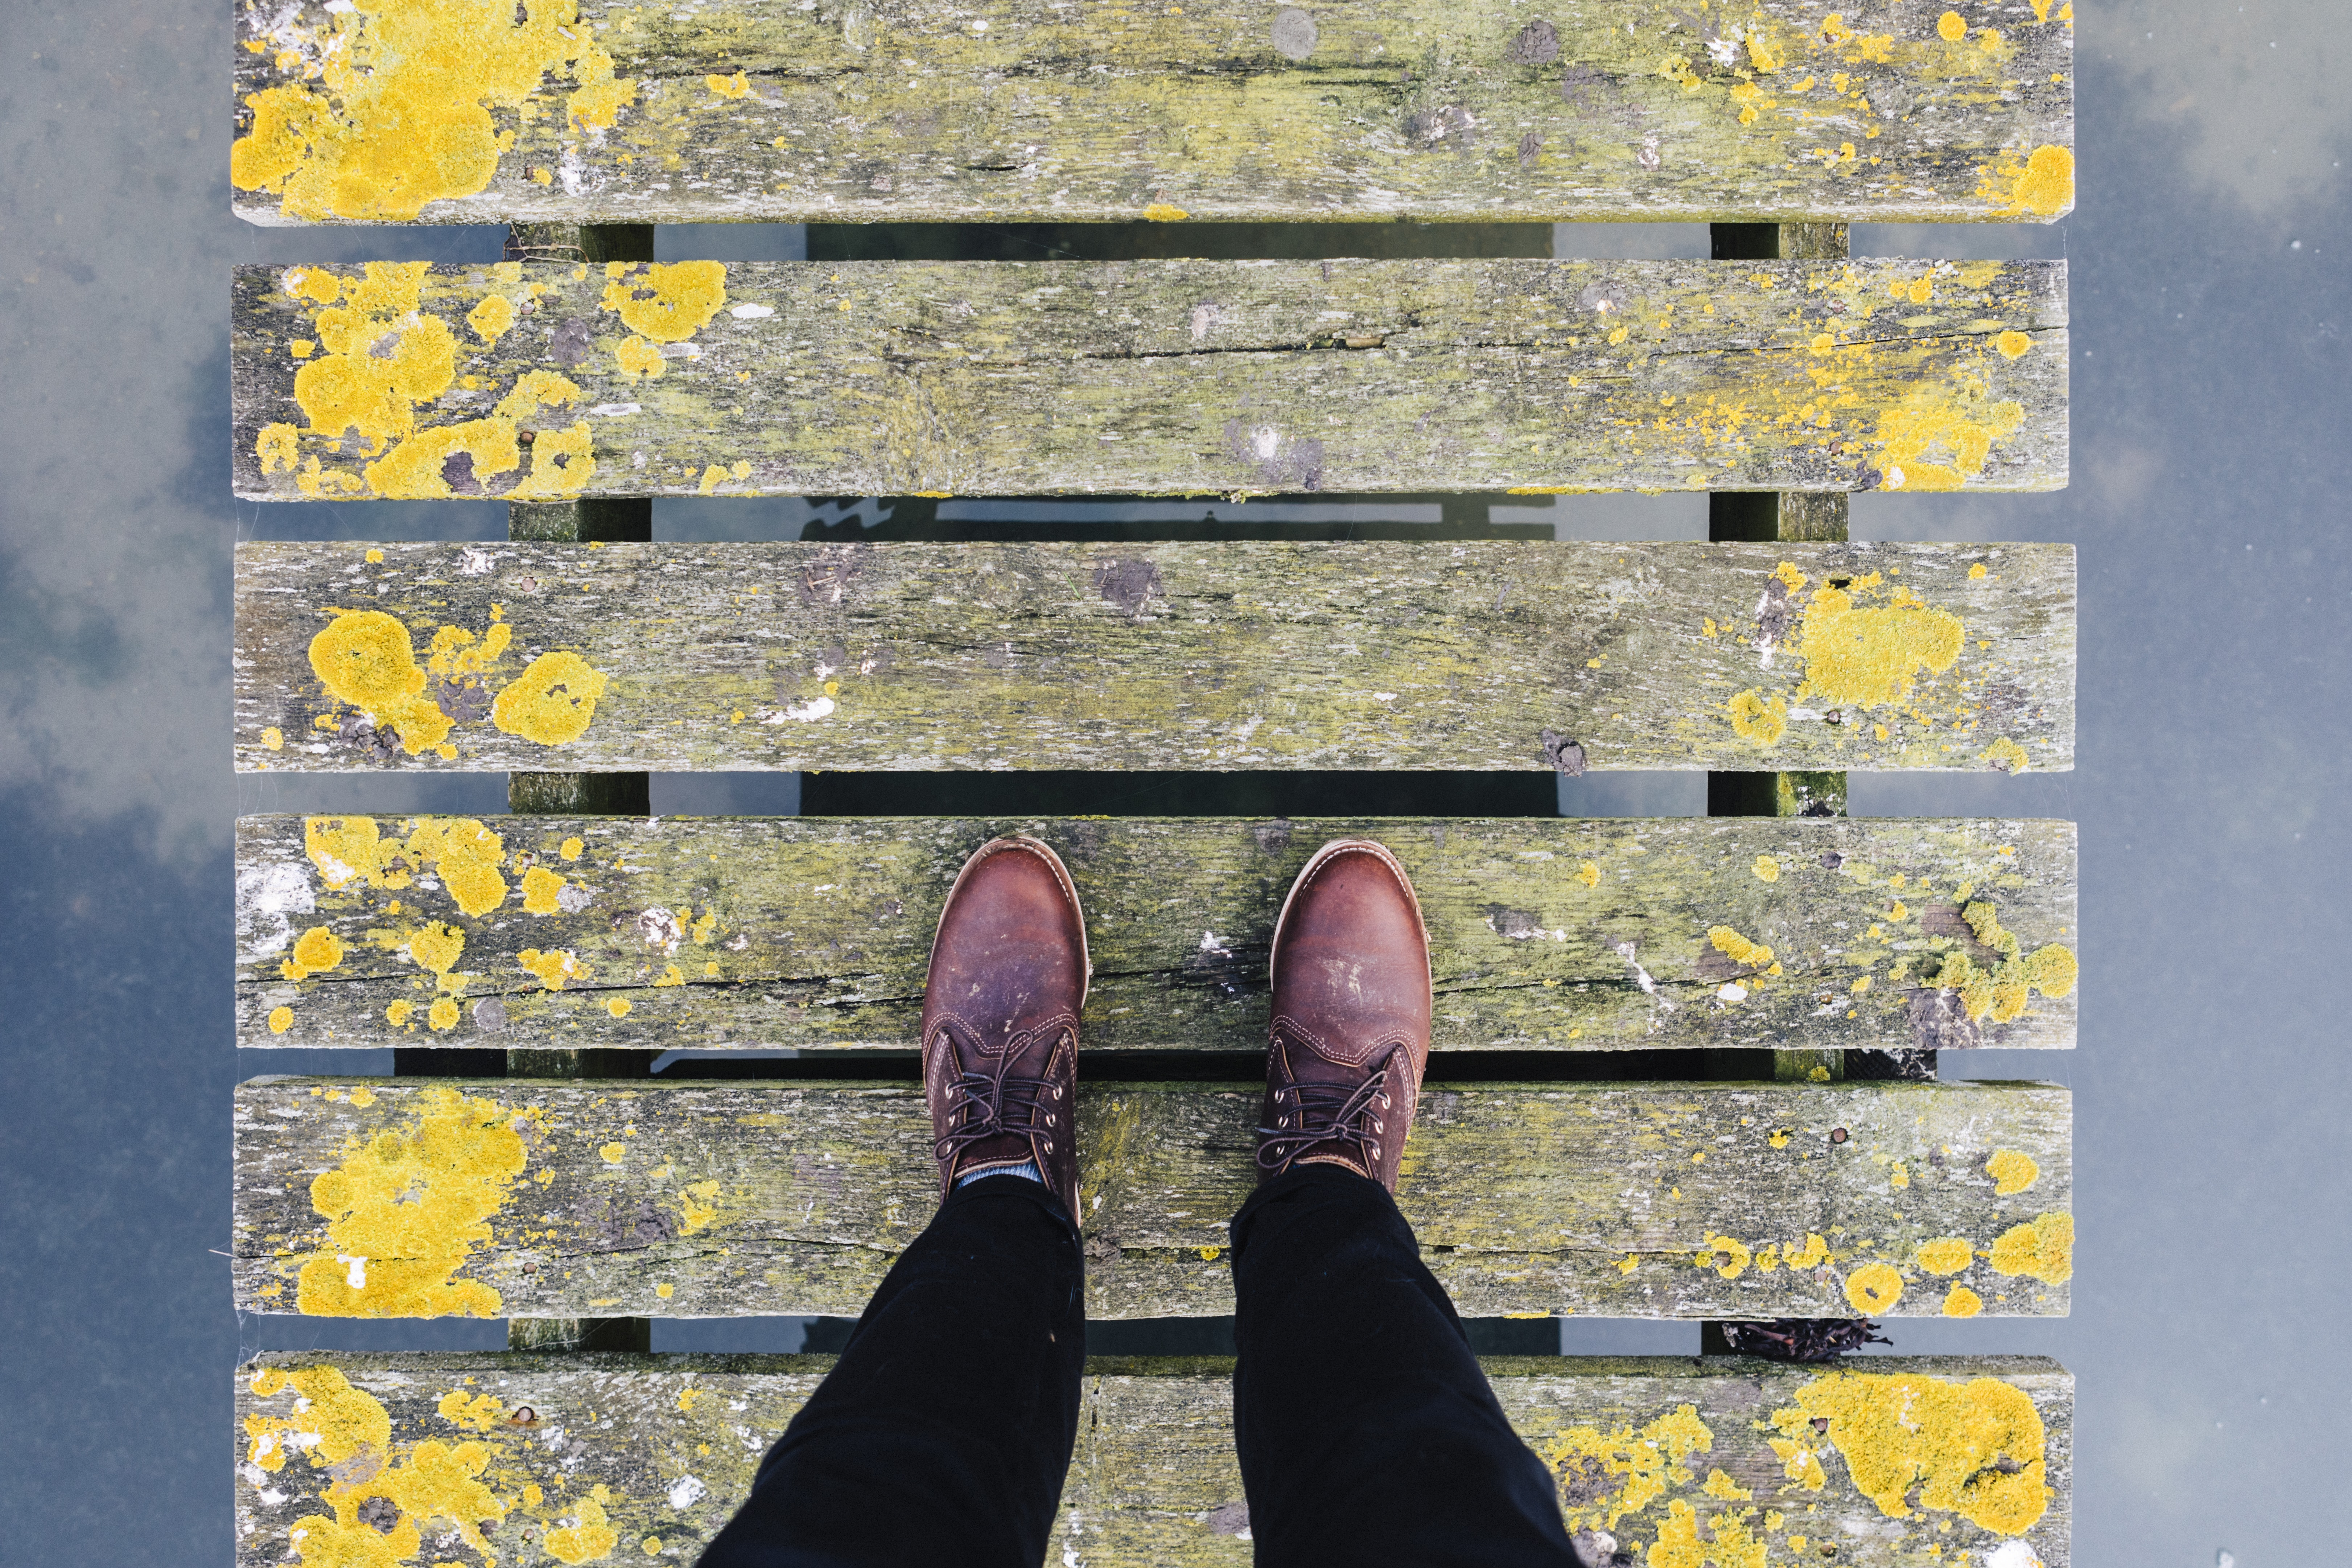 A person wearing burgundy color footwear walking on a fence style bridge